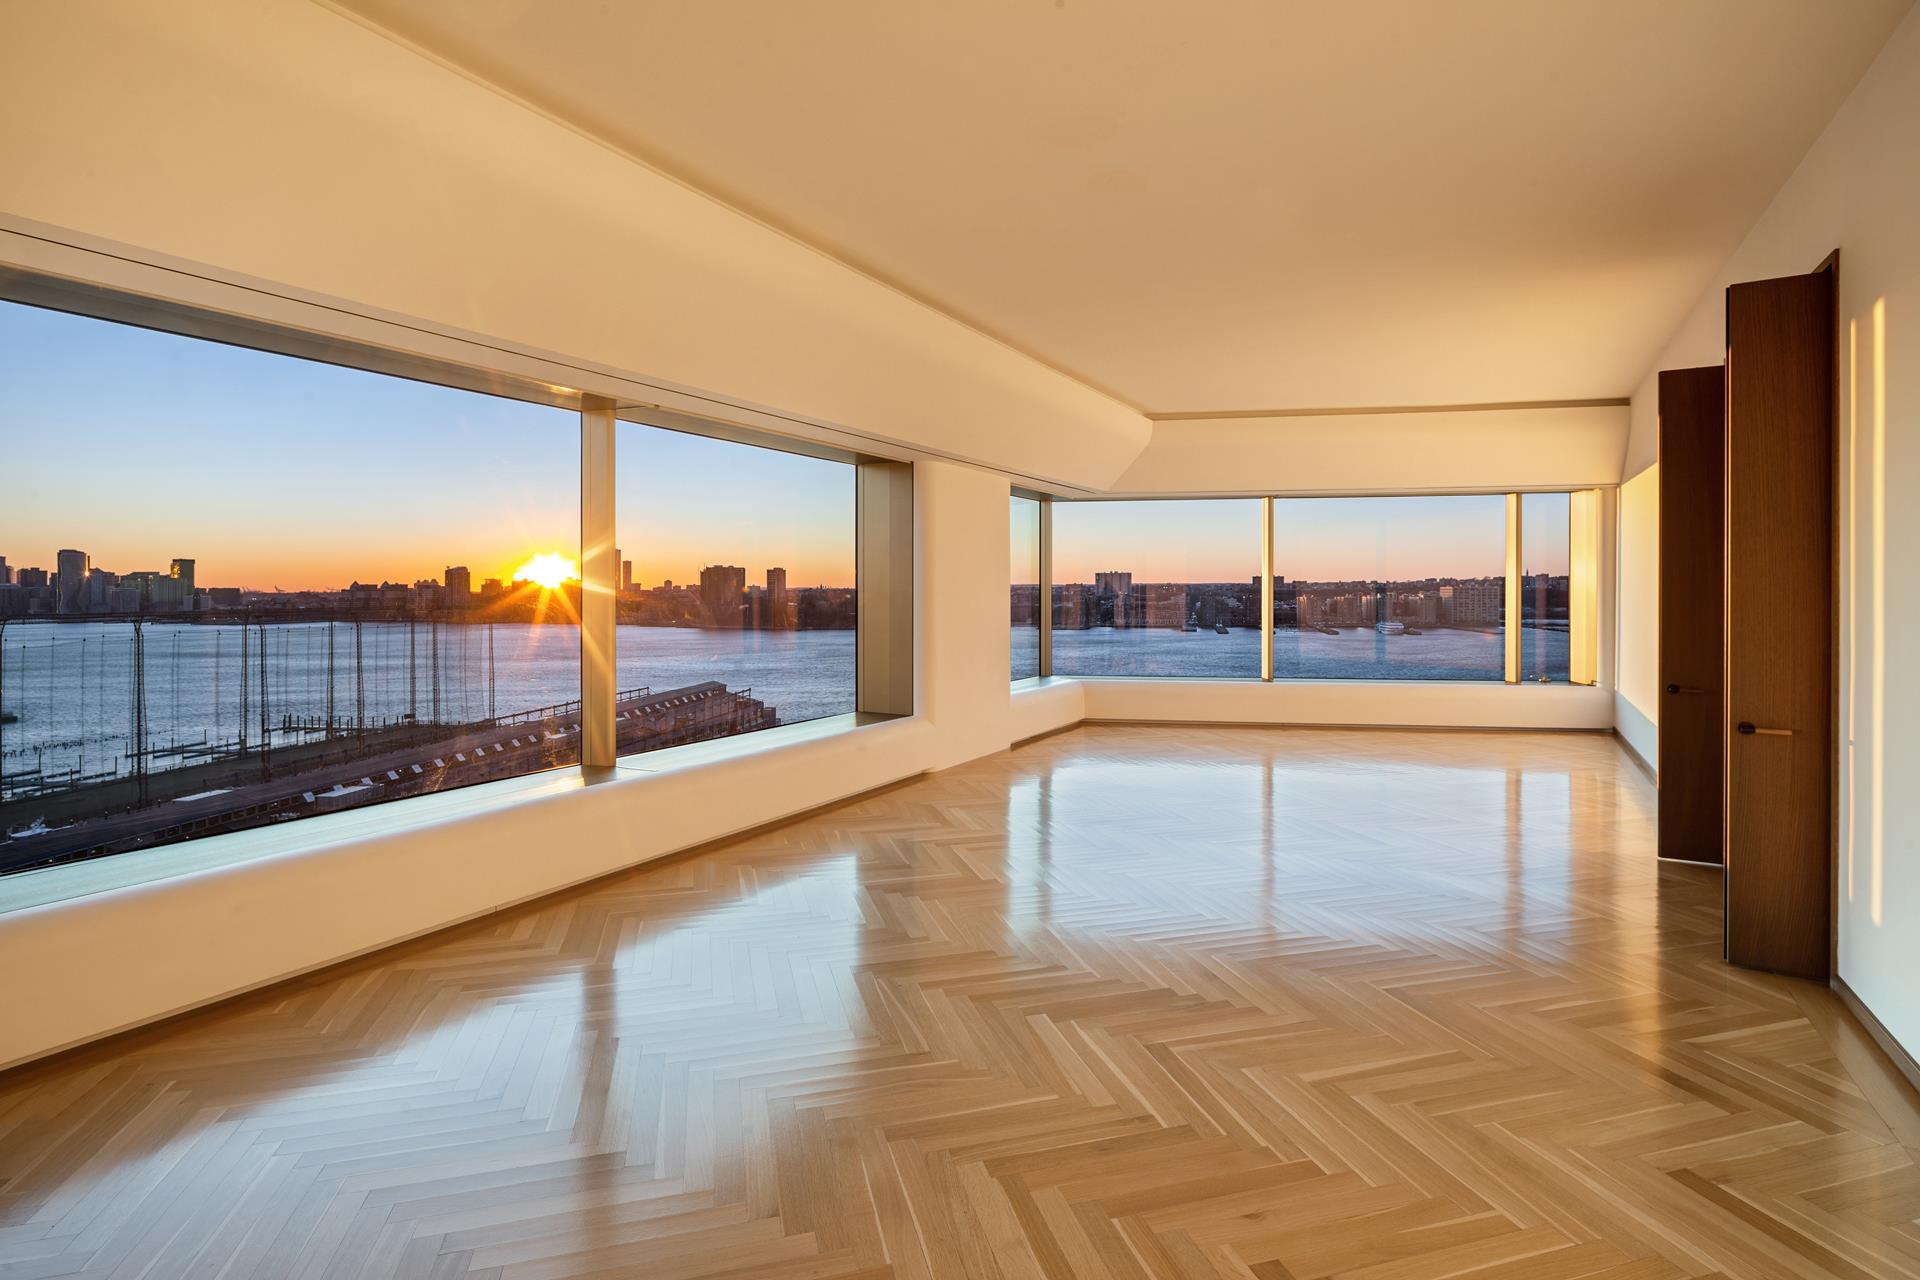 RARELY AVAILABLE HIGH FLOOR A-LINE 4 BEDROOM, 4.5 BATHROOM WITH SWEEPING VIEWS OF THE MOST SOUGHT-AFTER ICONIC NEW YORK CITY AND HUDSON RIVER.    Residence 15A is offering 4,271 sq ft of private living with 11' floor to ceiling dramatic windows that maximizing light and views. The 965 sq ft corner great room on the waterfront offers Statue of Liberty and Verrazano Bridge views. The smartly situated adjacent   dining room flows gracefully in to the Eat-in Chef's Kitchen overlooking the Hudson River. Kitchen features include custom Molteni natural stained oak cabinetry with a hand selected beveled Blanco de Macael marble slab countertops and backsplash. Top of line   appliances are fully integrated including Subzero, Gaggenau, Miele.     The large-scale corner Primary Bedroom suite on the waterfront offers spectacular Hudson River and Midtown skyline views. This generous bedroom includes an oversized dressing room with built-in custom closets by Molteni and a lavish windowed spa bathroom with   deep soaking tub, radiant heated Luna Black granite floors, double custom Corian vanity with integrated lighting, large stall shower, and separate water closet. The additional spacious 3 bedrooms also offer New York City Landmark views and features en-suite   windowed bathrooms with Travertino Striato stone and gracious Dornbracht fixtures. This home also has a professional laundry room.    Parking Available.     Amenities include a private, gated drive court surrounded by a twenty-foot green wall and a dramatic, awe-inspiring thirty-four foot, double height lobby. Additional amenities include full-time doorman, concierge, porter and valet services, a state-of-the-art   fitness center with a his and her spa, yoga room, residents' lounge, children's play room, bike storage, a live-in super and a dedicated, separate service entry.    Note: Unit 15A and 15B are currently configured as a combination and will be legally separated. All taxes and common charges are approximate.